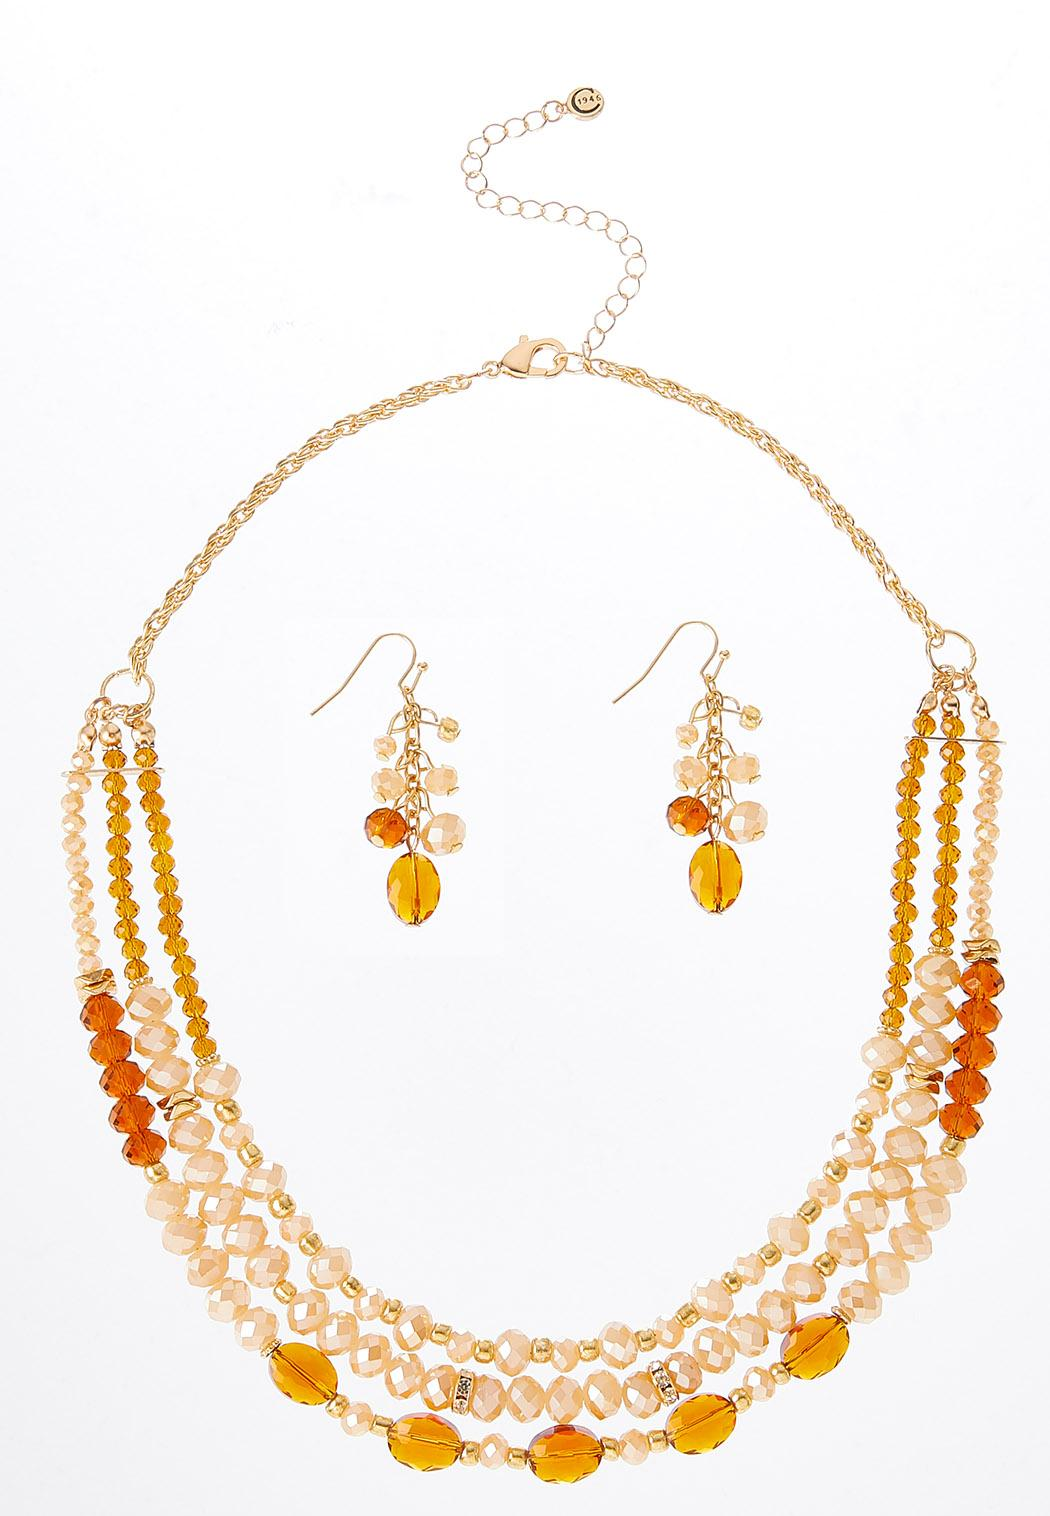 Citrine Bead Necklace Earring Set